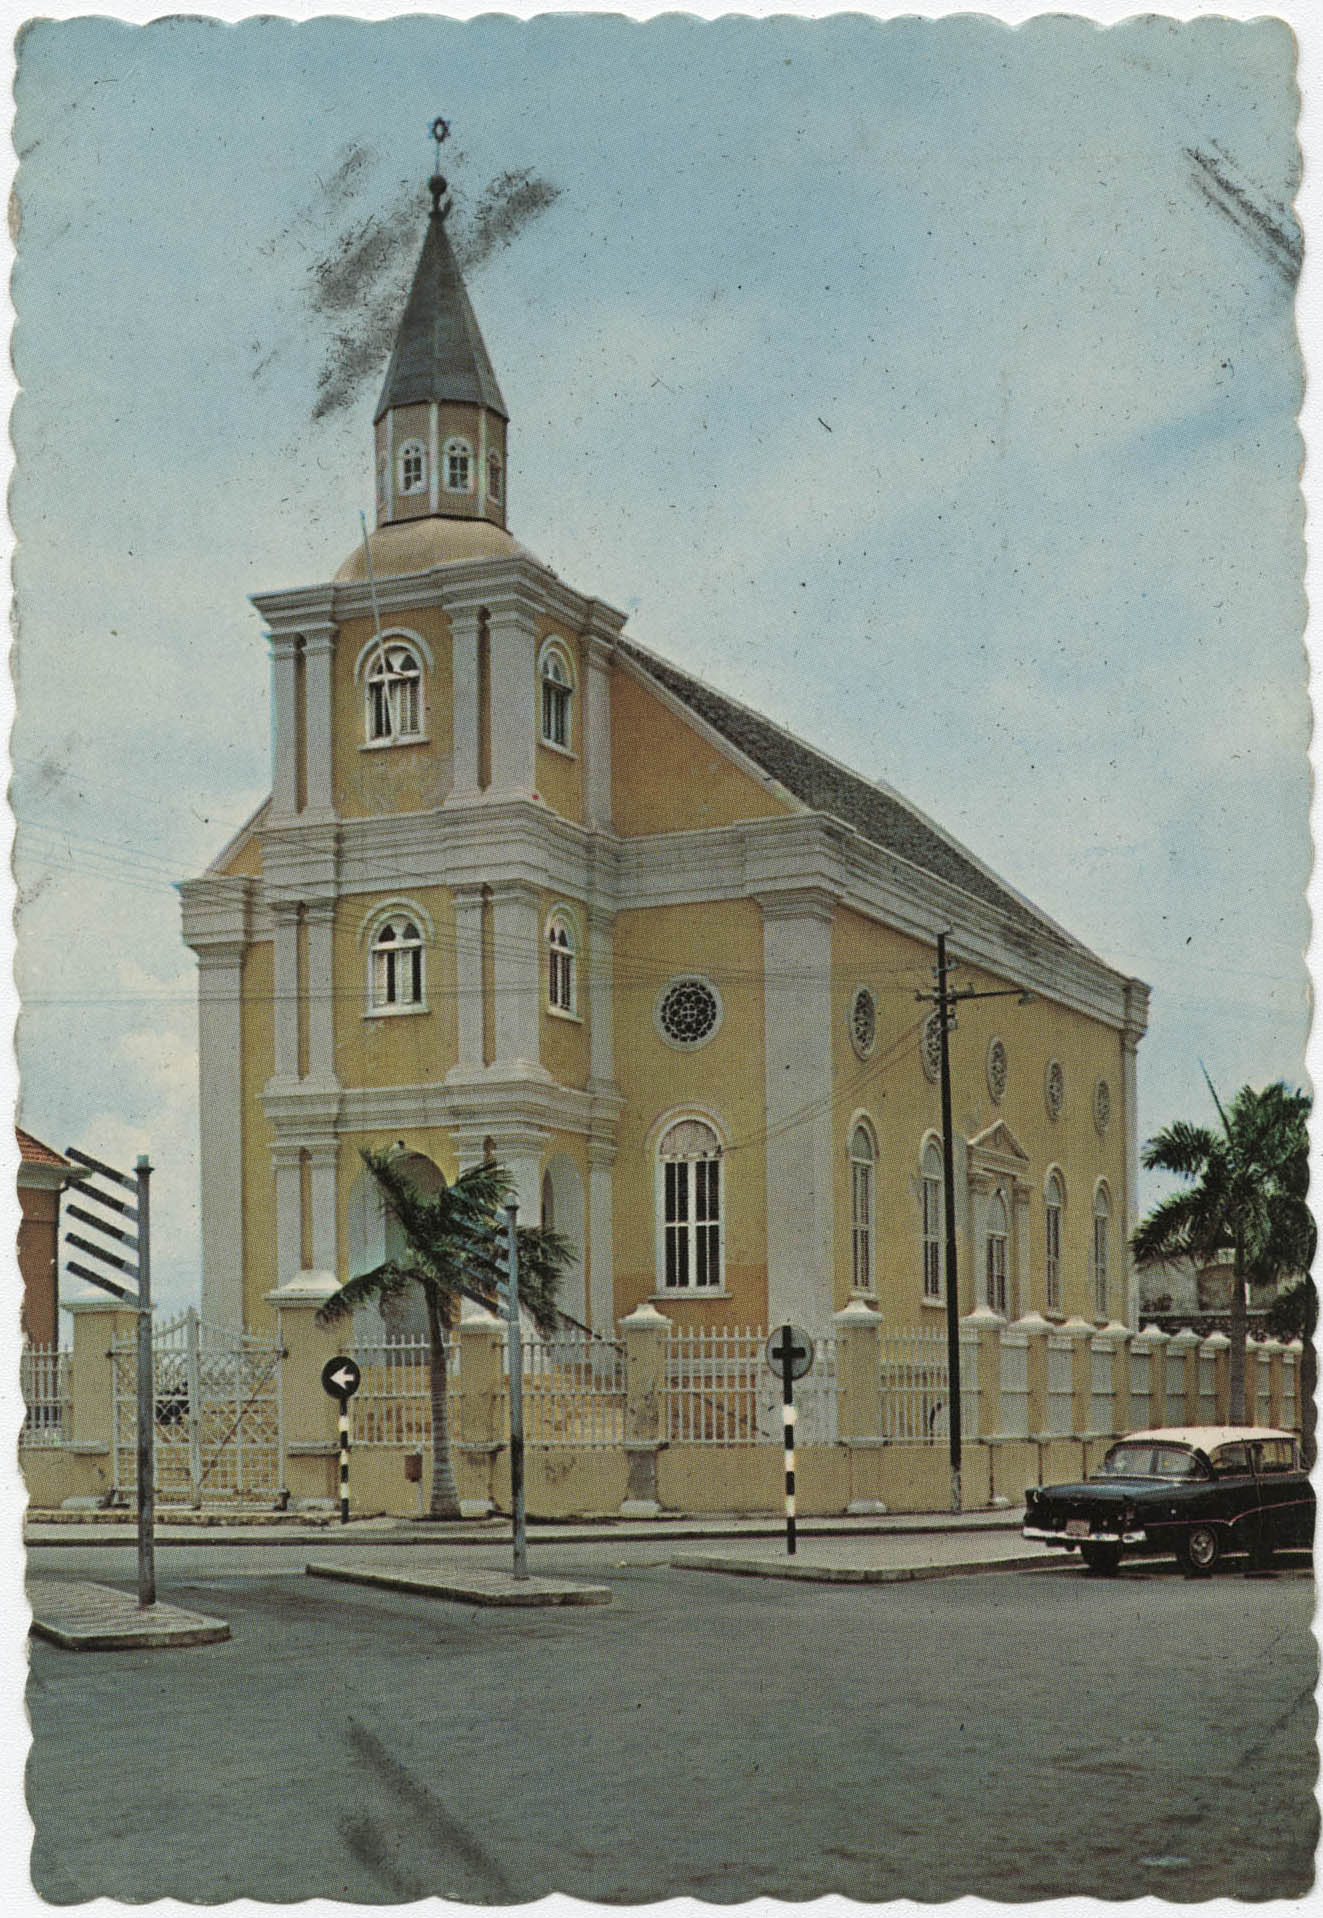 The Hendrikplein with Jewish synagogue in Willemstad, Curaçao, Neth. Antilles.